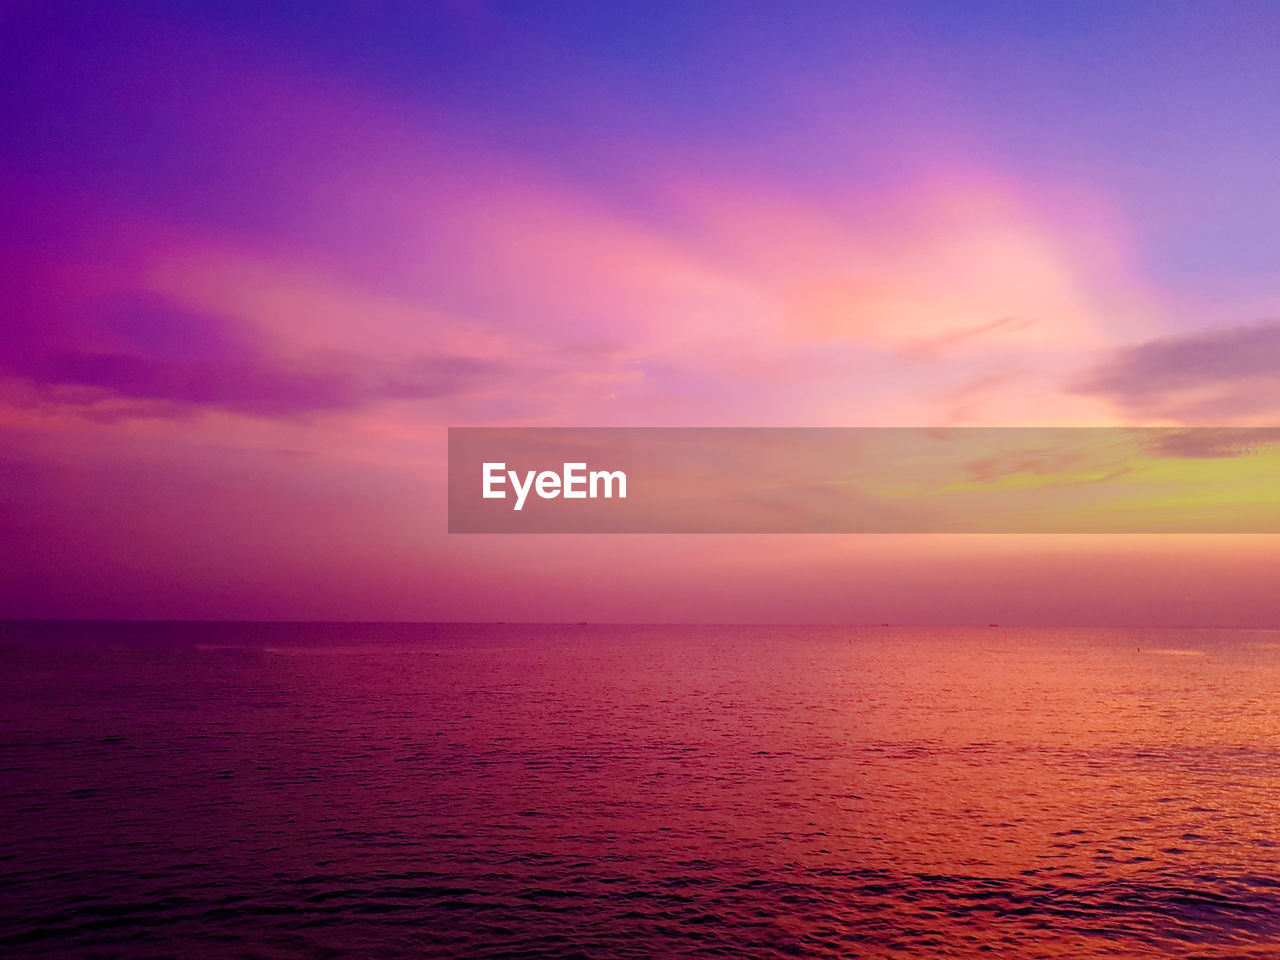 sea, water, sky, sunset, beauty in nature, horizon, scenics - nature, horizon over water, tranquility, tranquil scene, orange color, waterfront, cloud - sky, idyllic, nature, no people, seascape, non-urban scene, pink color, purple